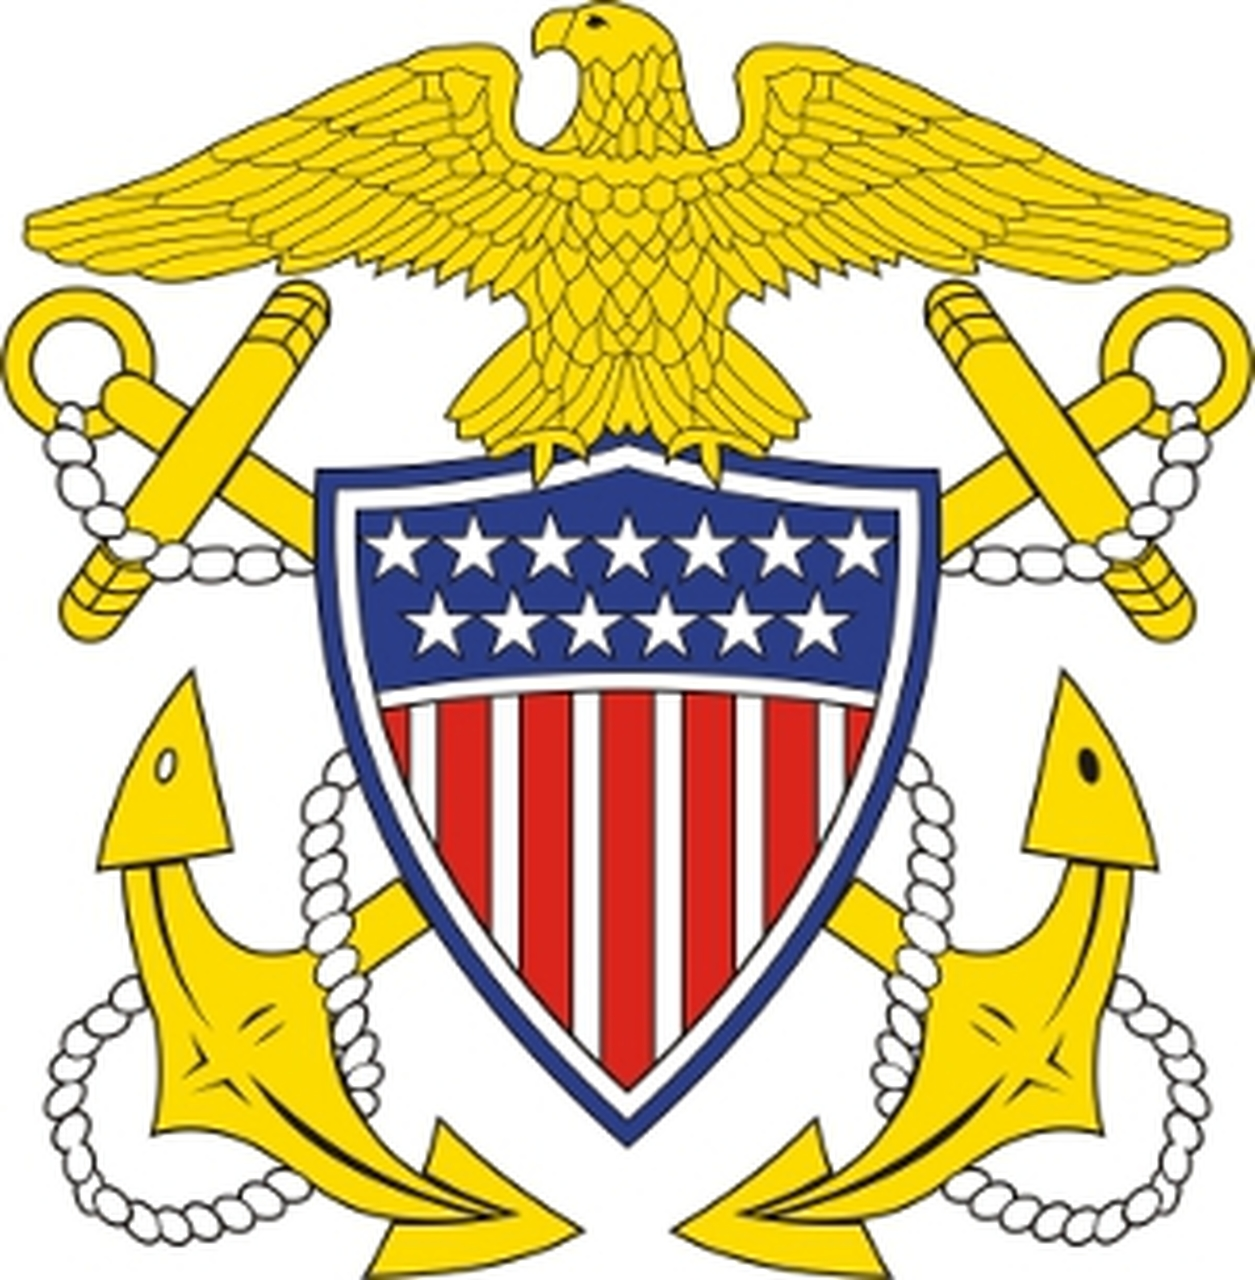 Navy officer crest clipart jpg royalty free US Navy Officer Insignia jpg royalty free